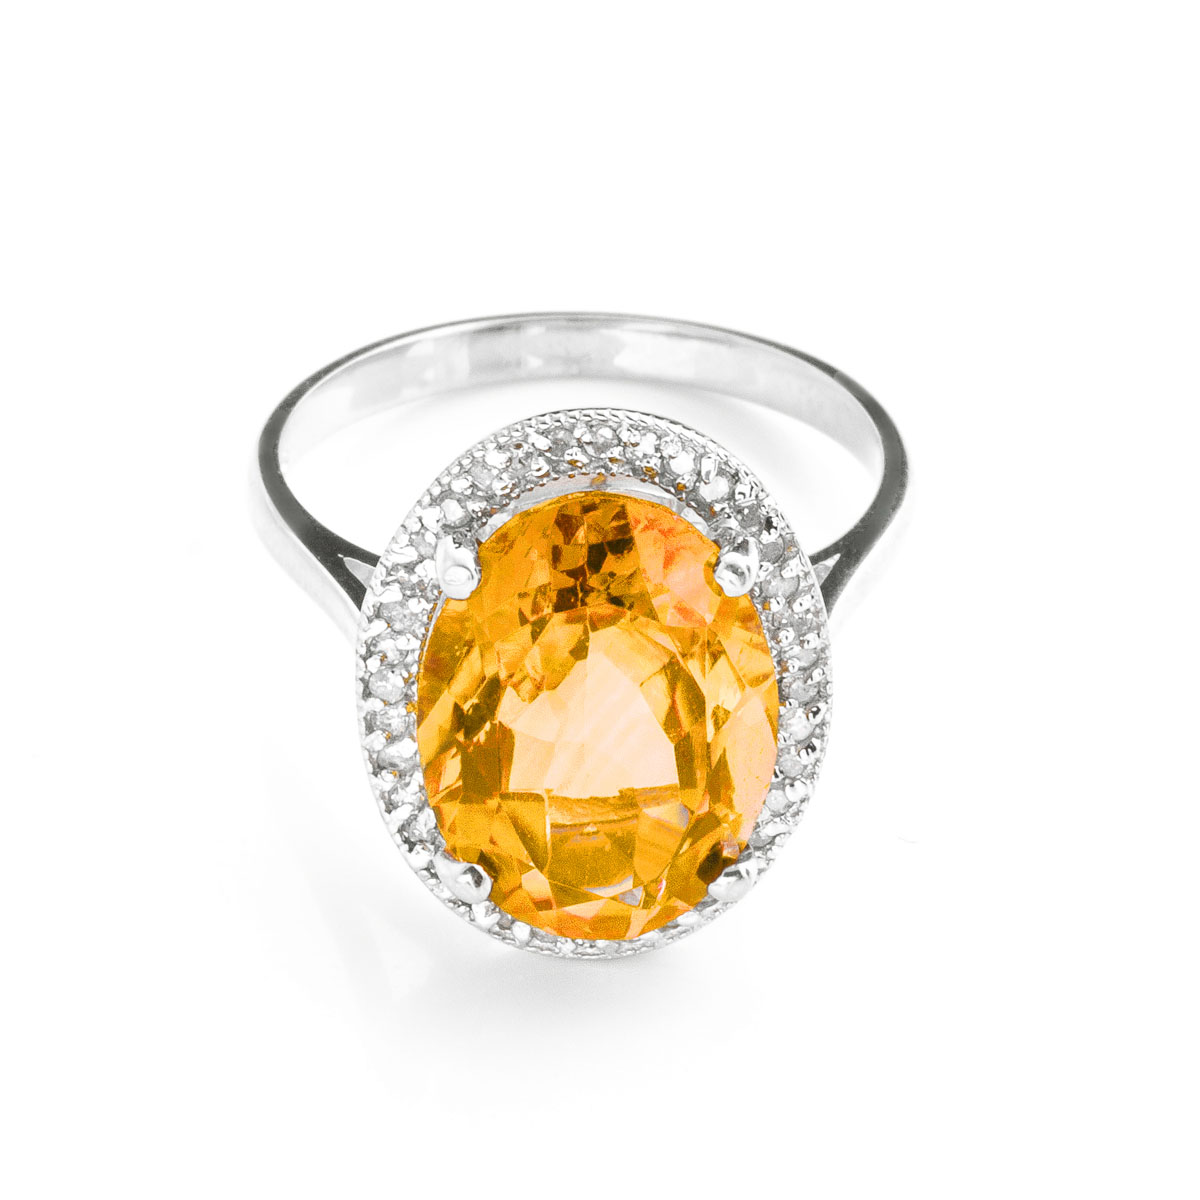 Citrine Halo Ring 5.28 ctw in 18ct White Gold